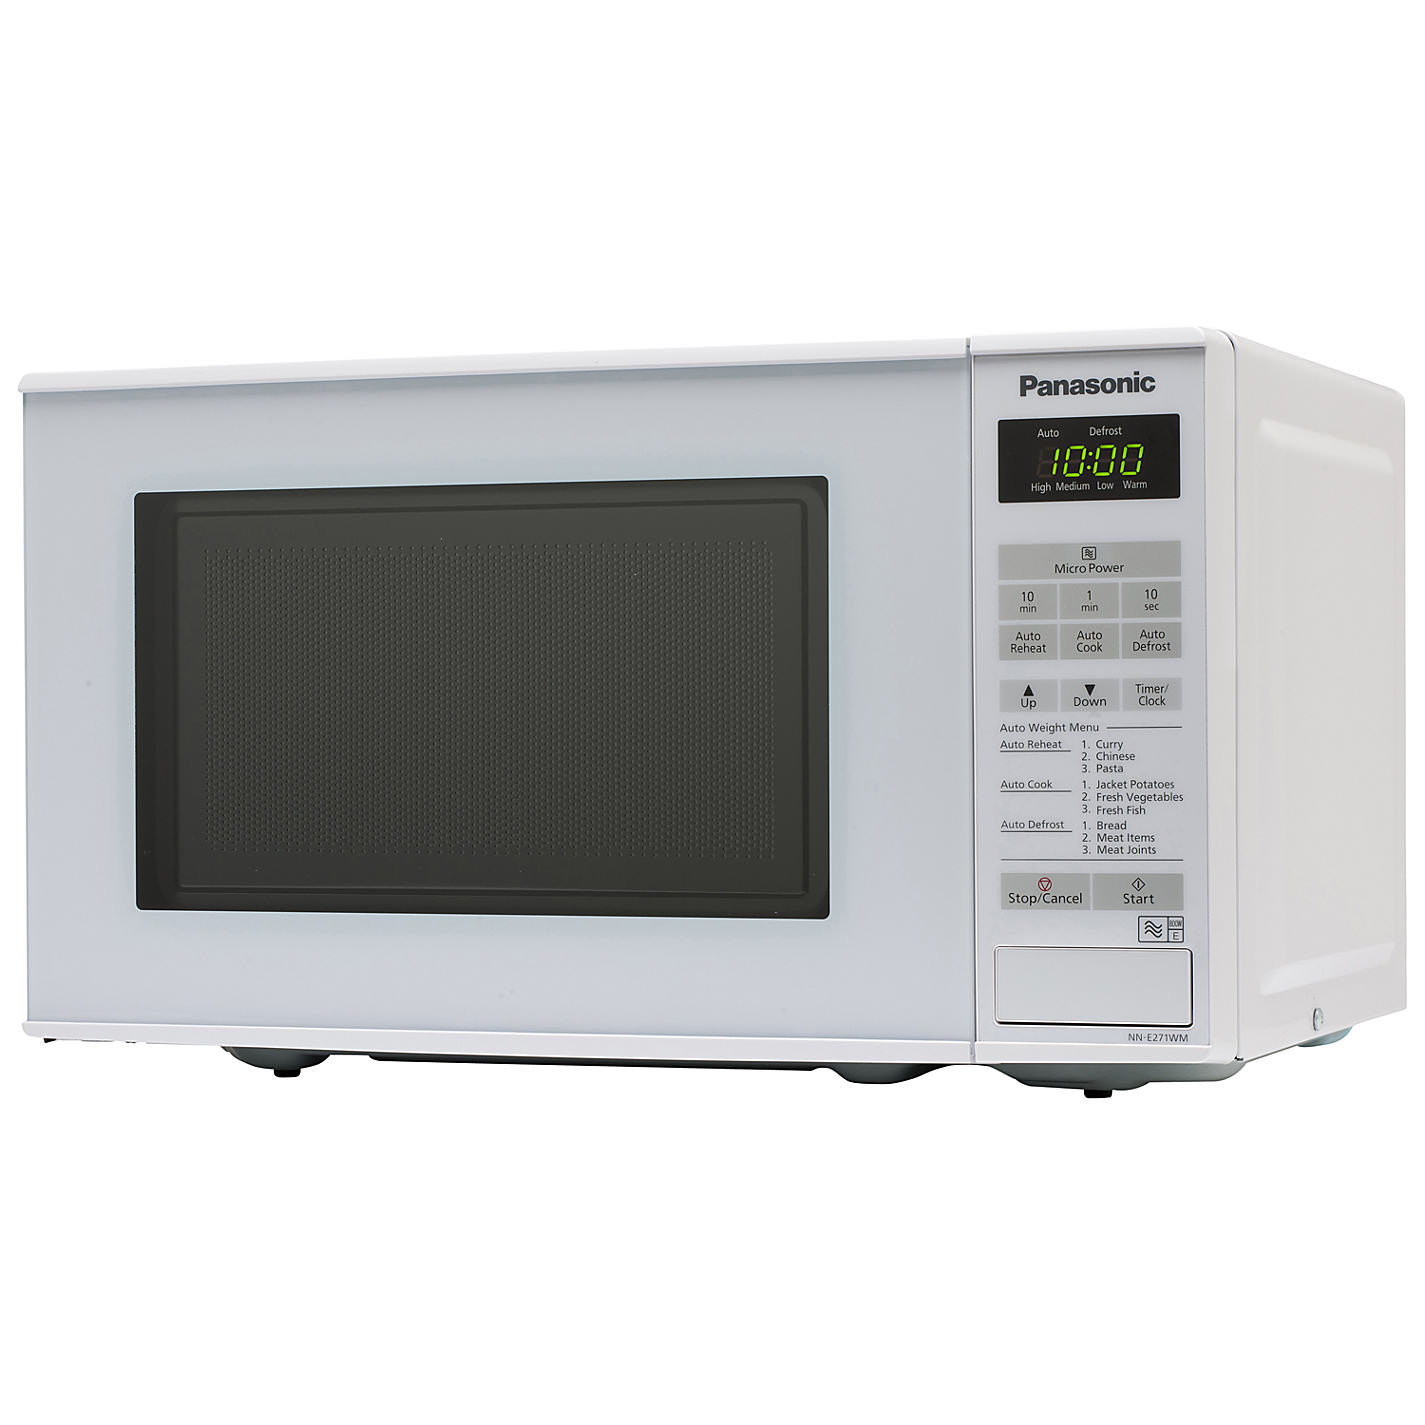 Panasonic Nn E271wmbpaq Microwave Oven White Online At Johnlewis